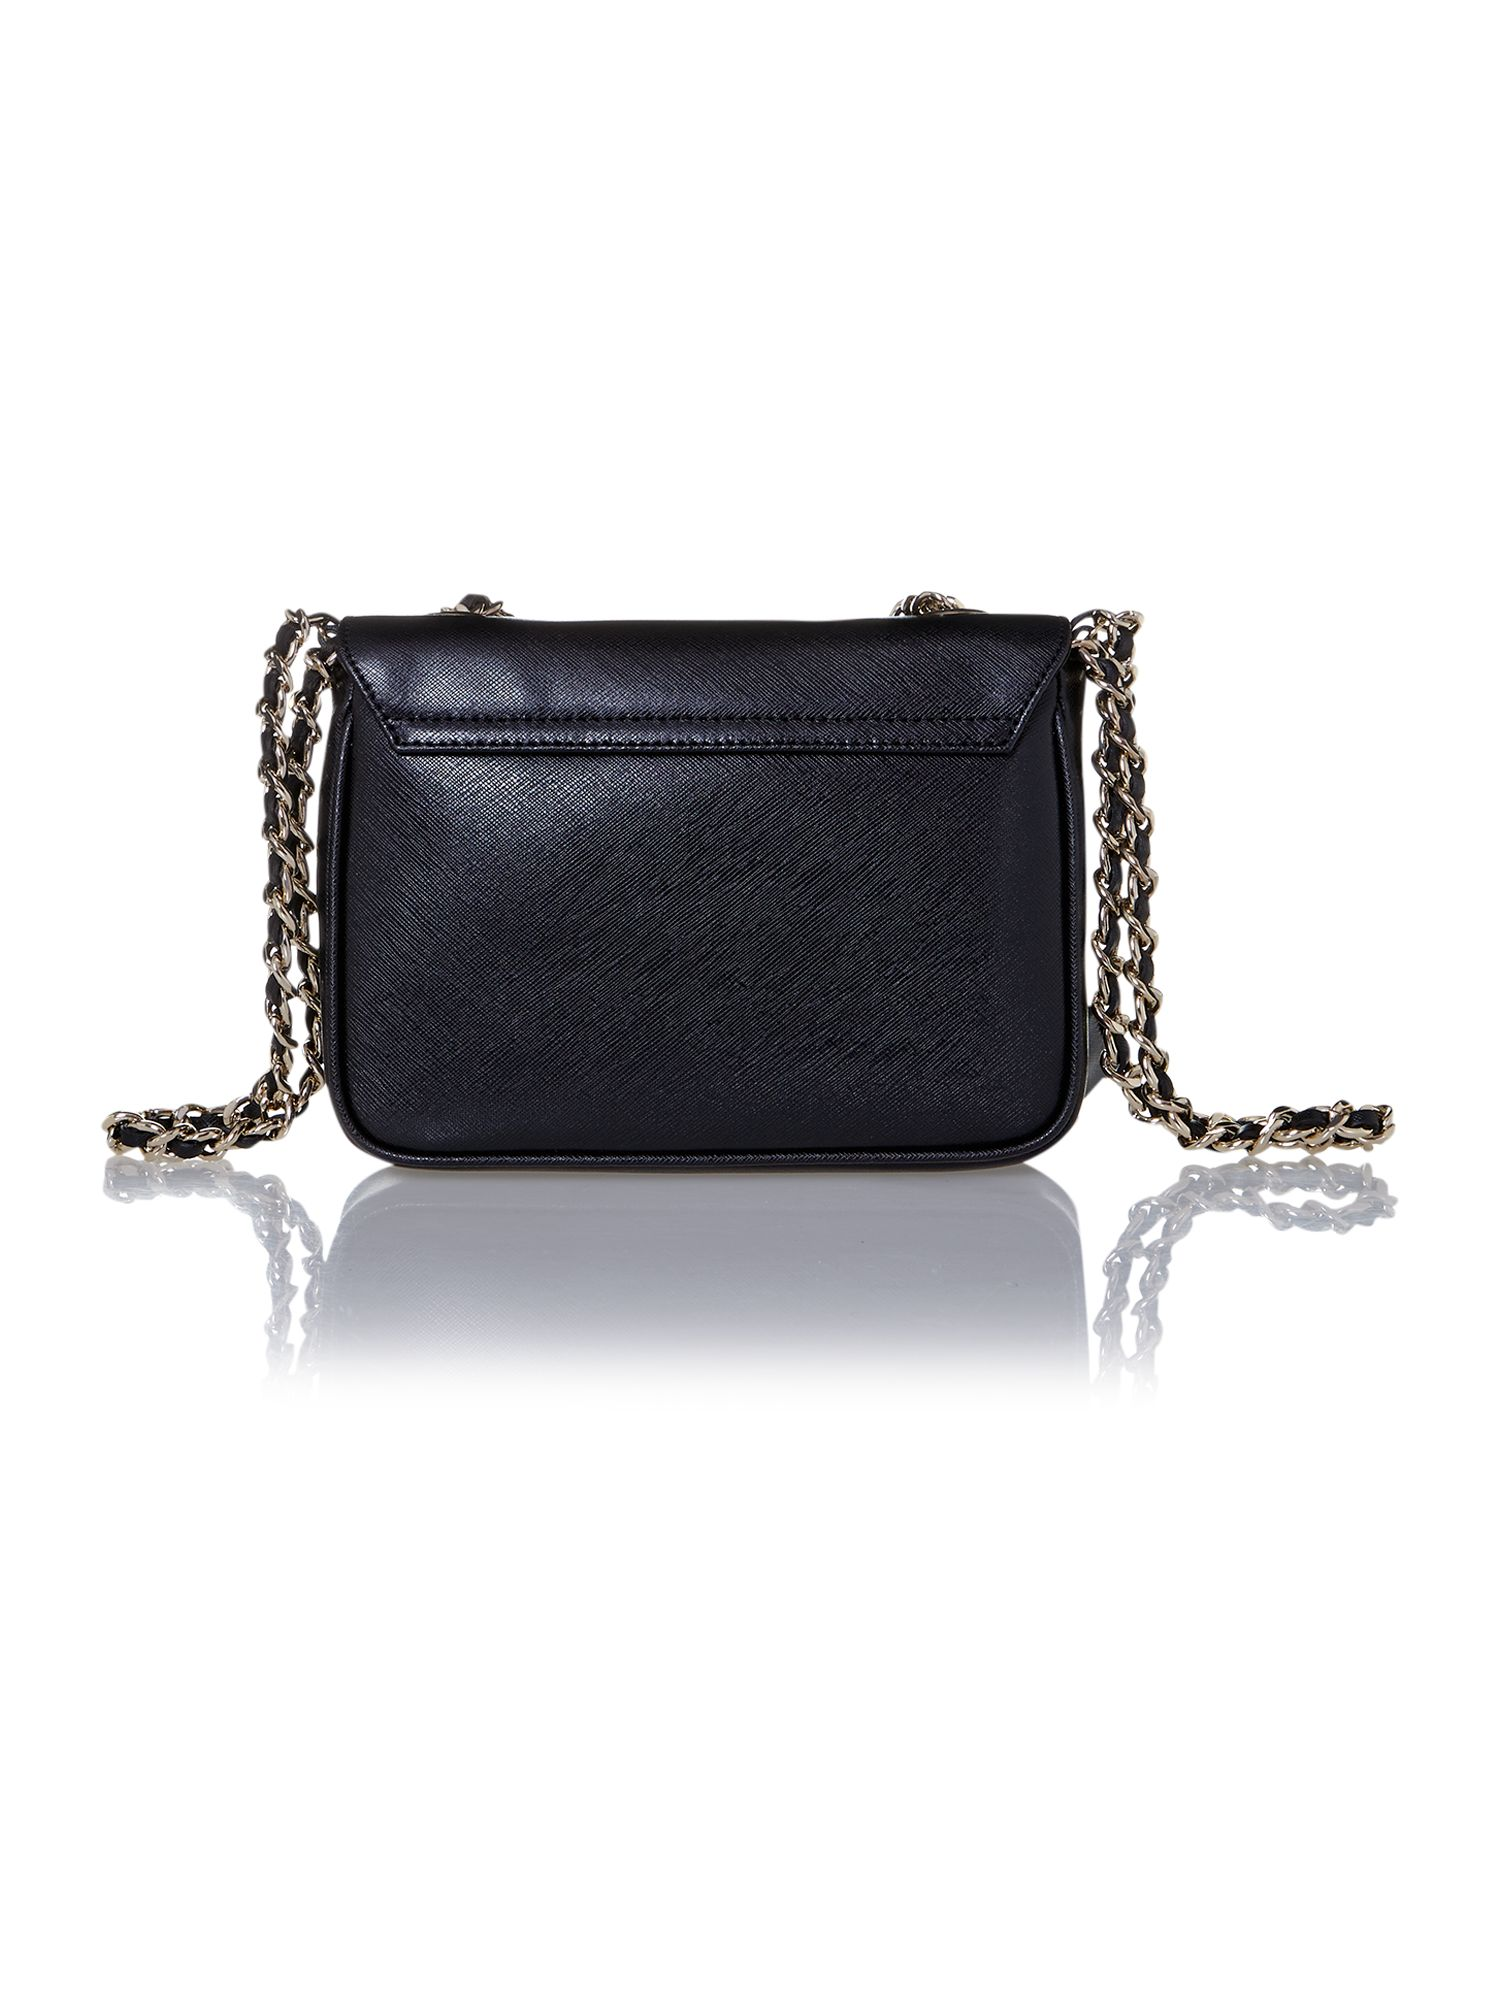 Margo black small shoulder bag